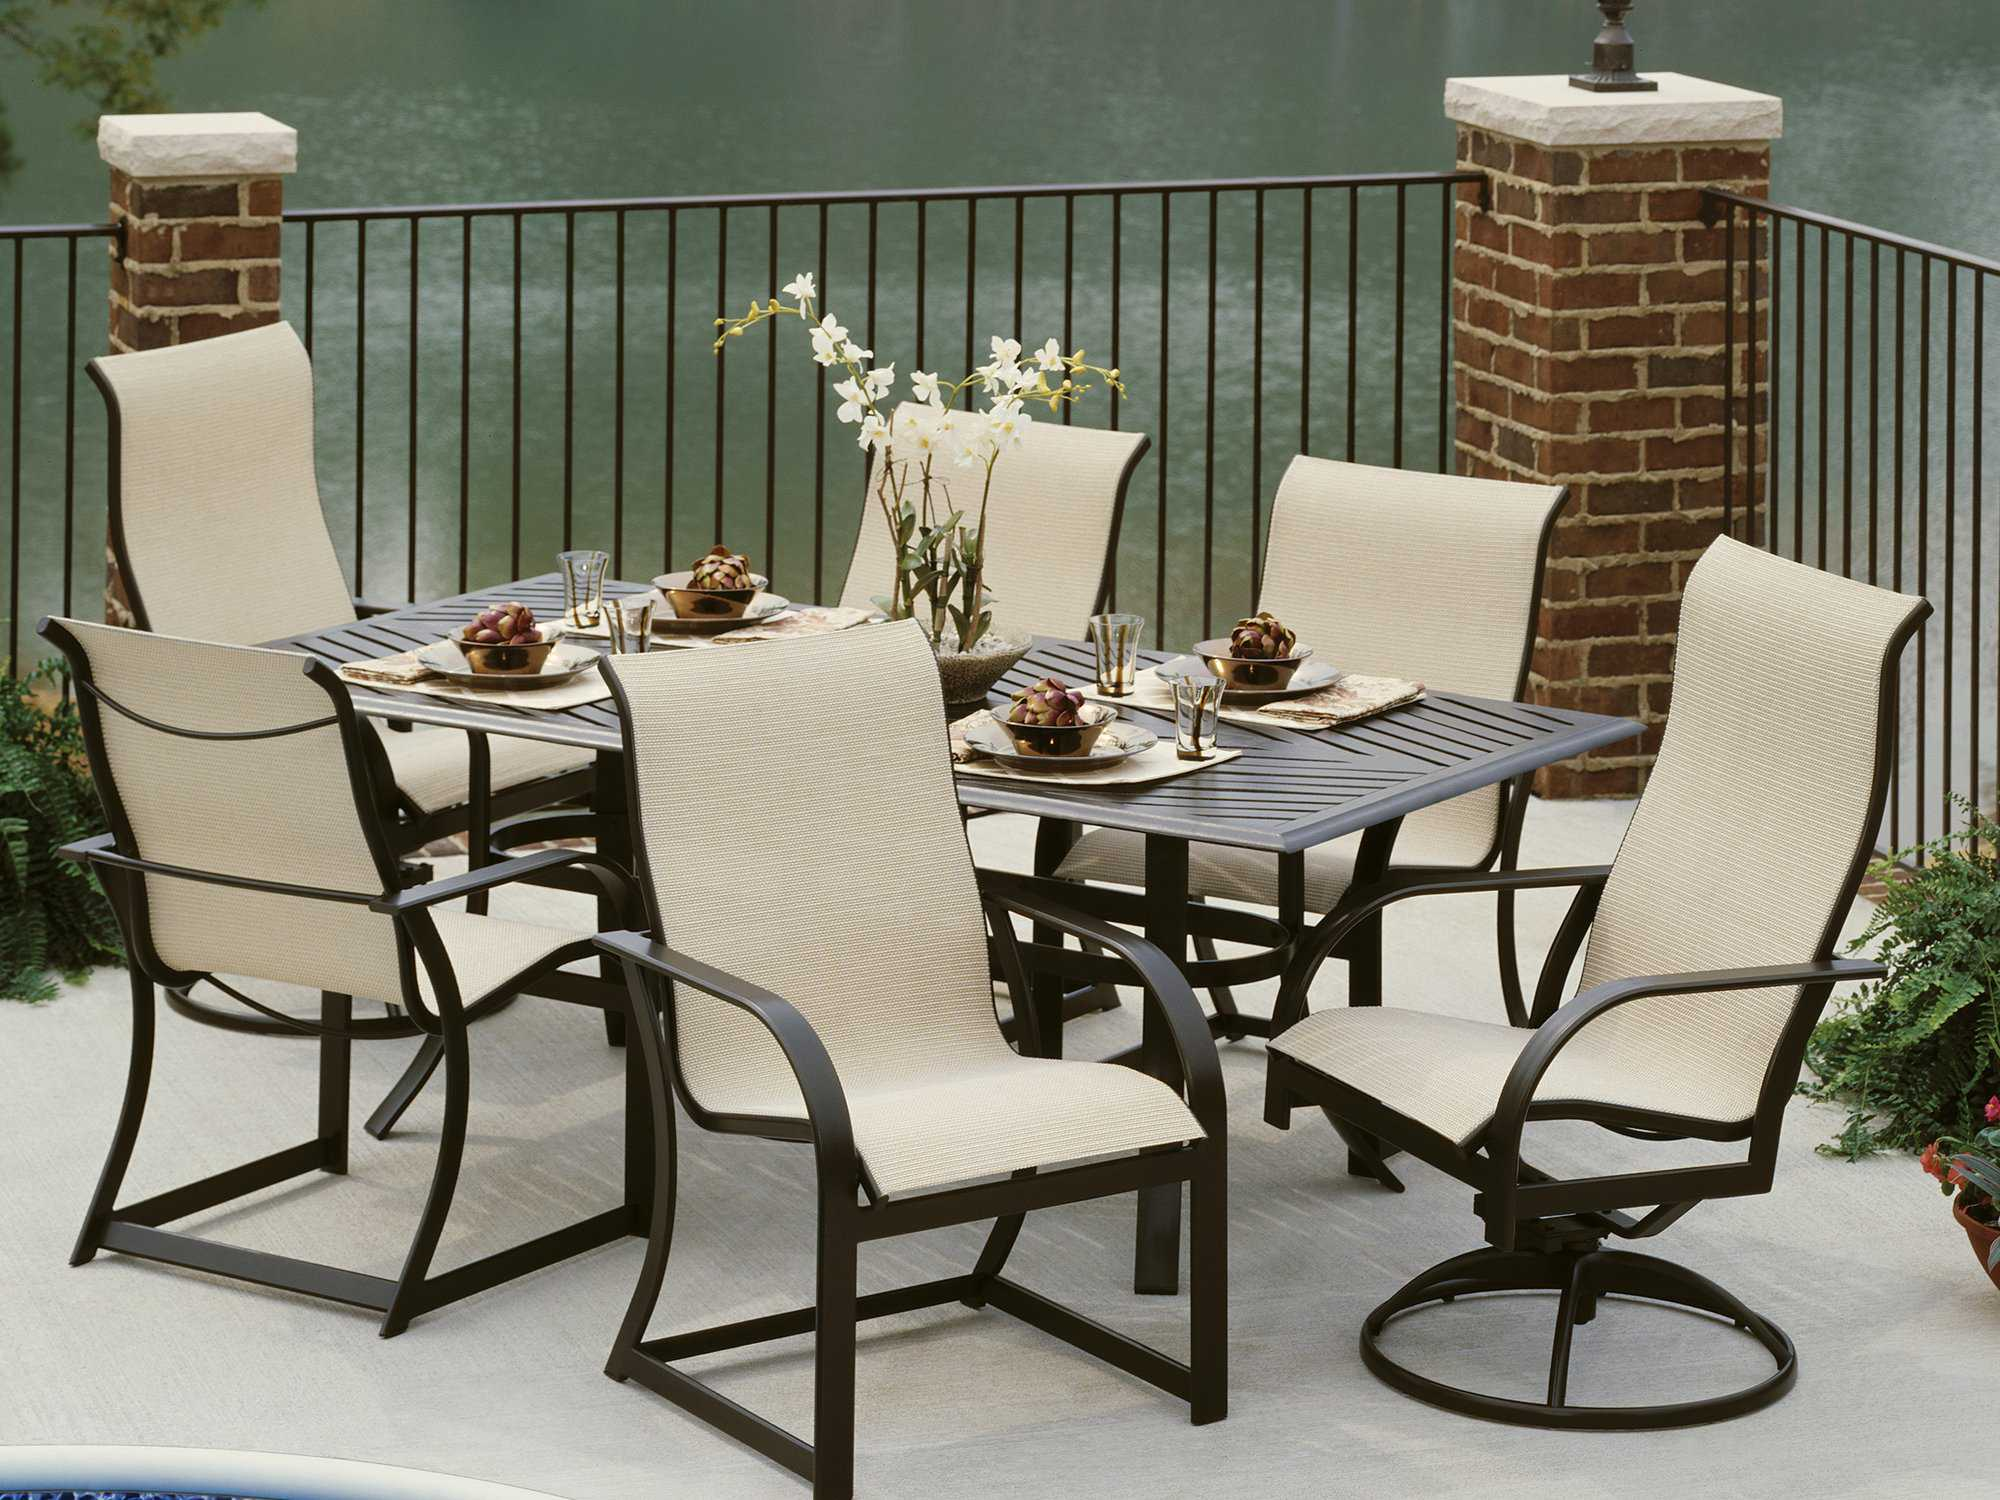 dining sears table sets darbylanefurniture your ty set new pennington patio style house com palmetto beautiful piece for furniture